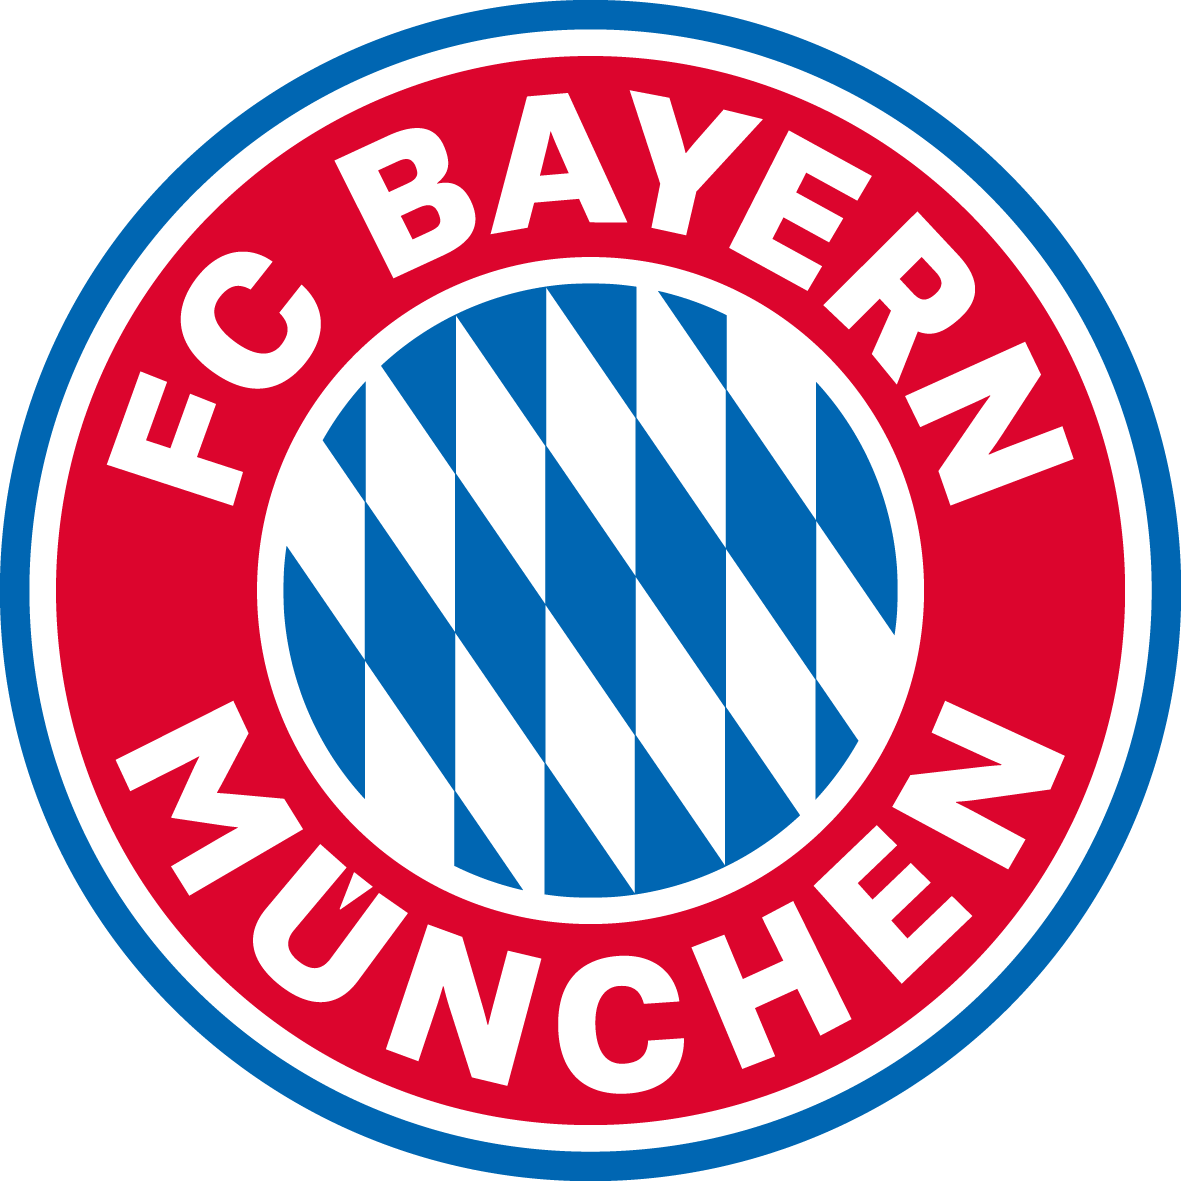 Bayern Munich are one of the most successful European football clubs of all time